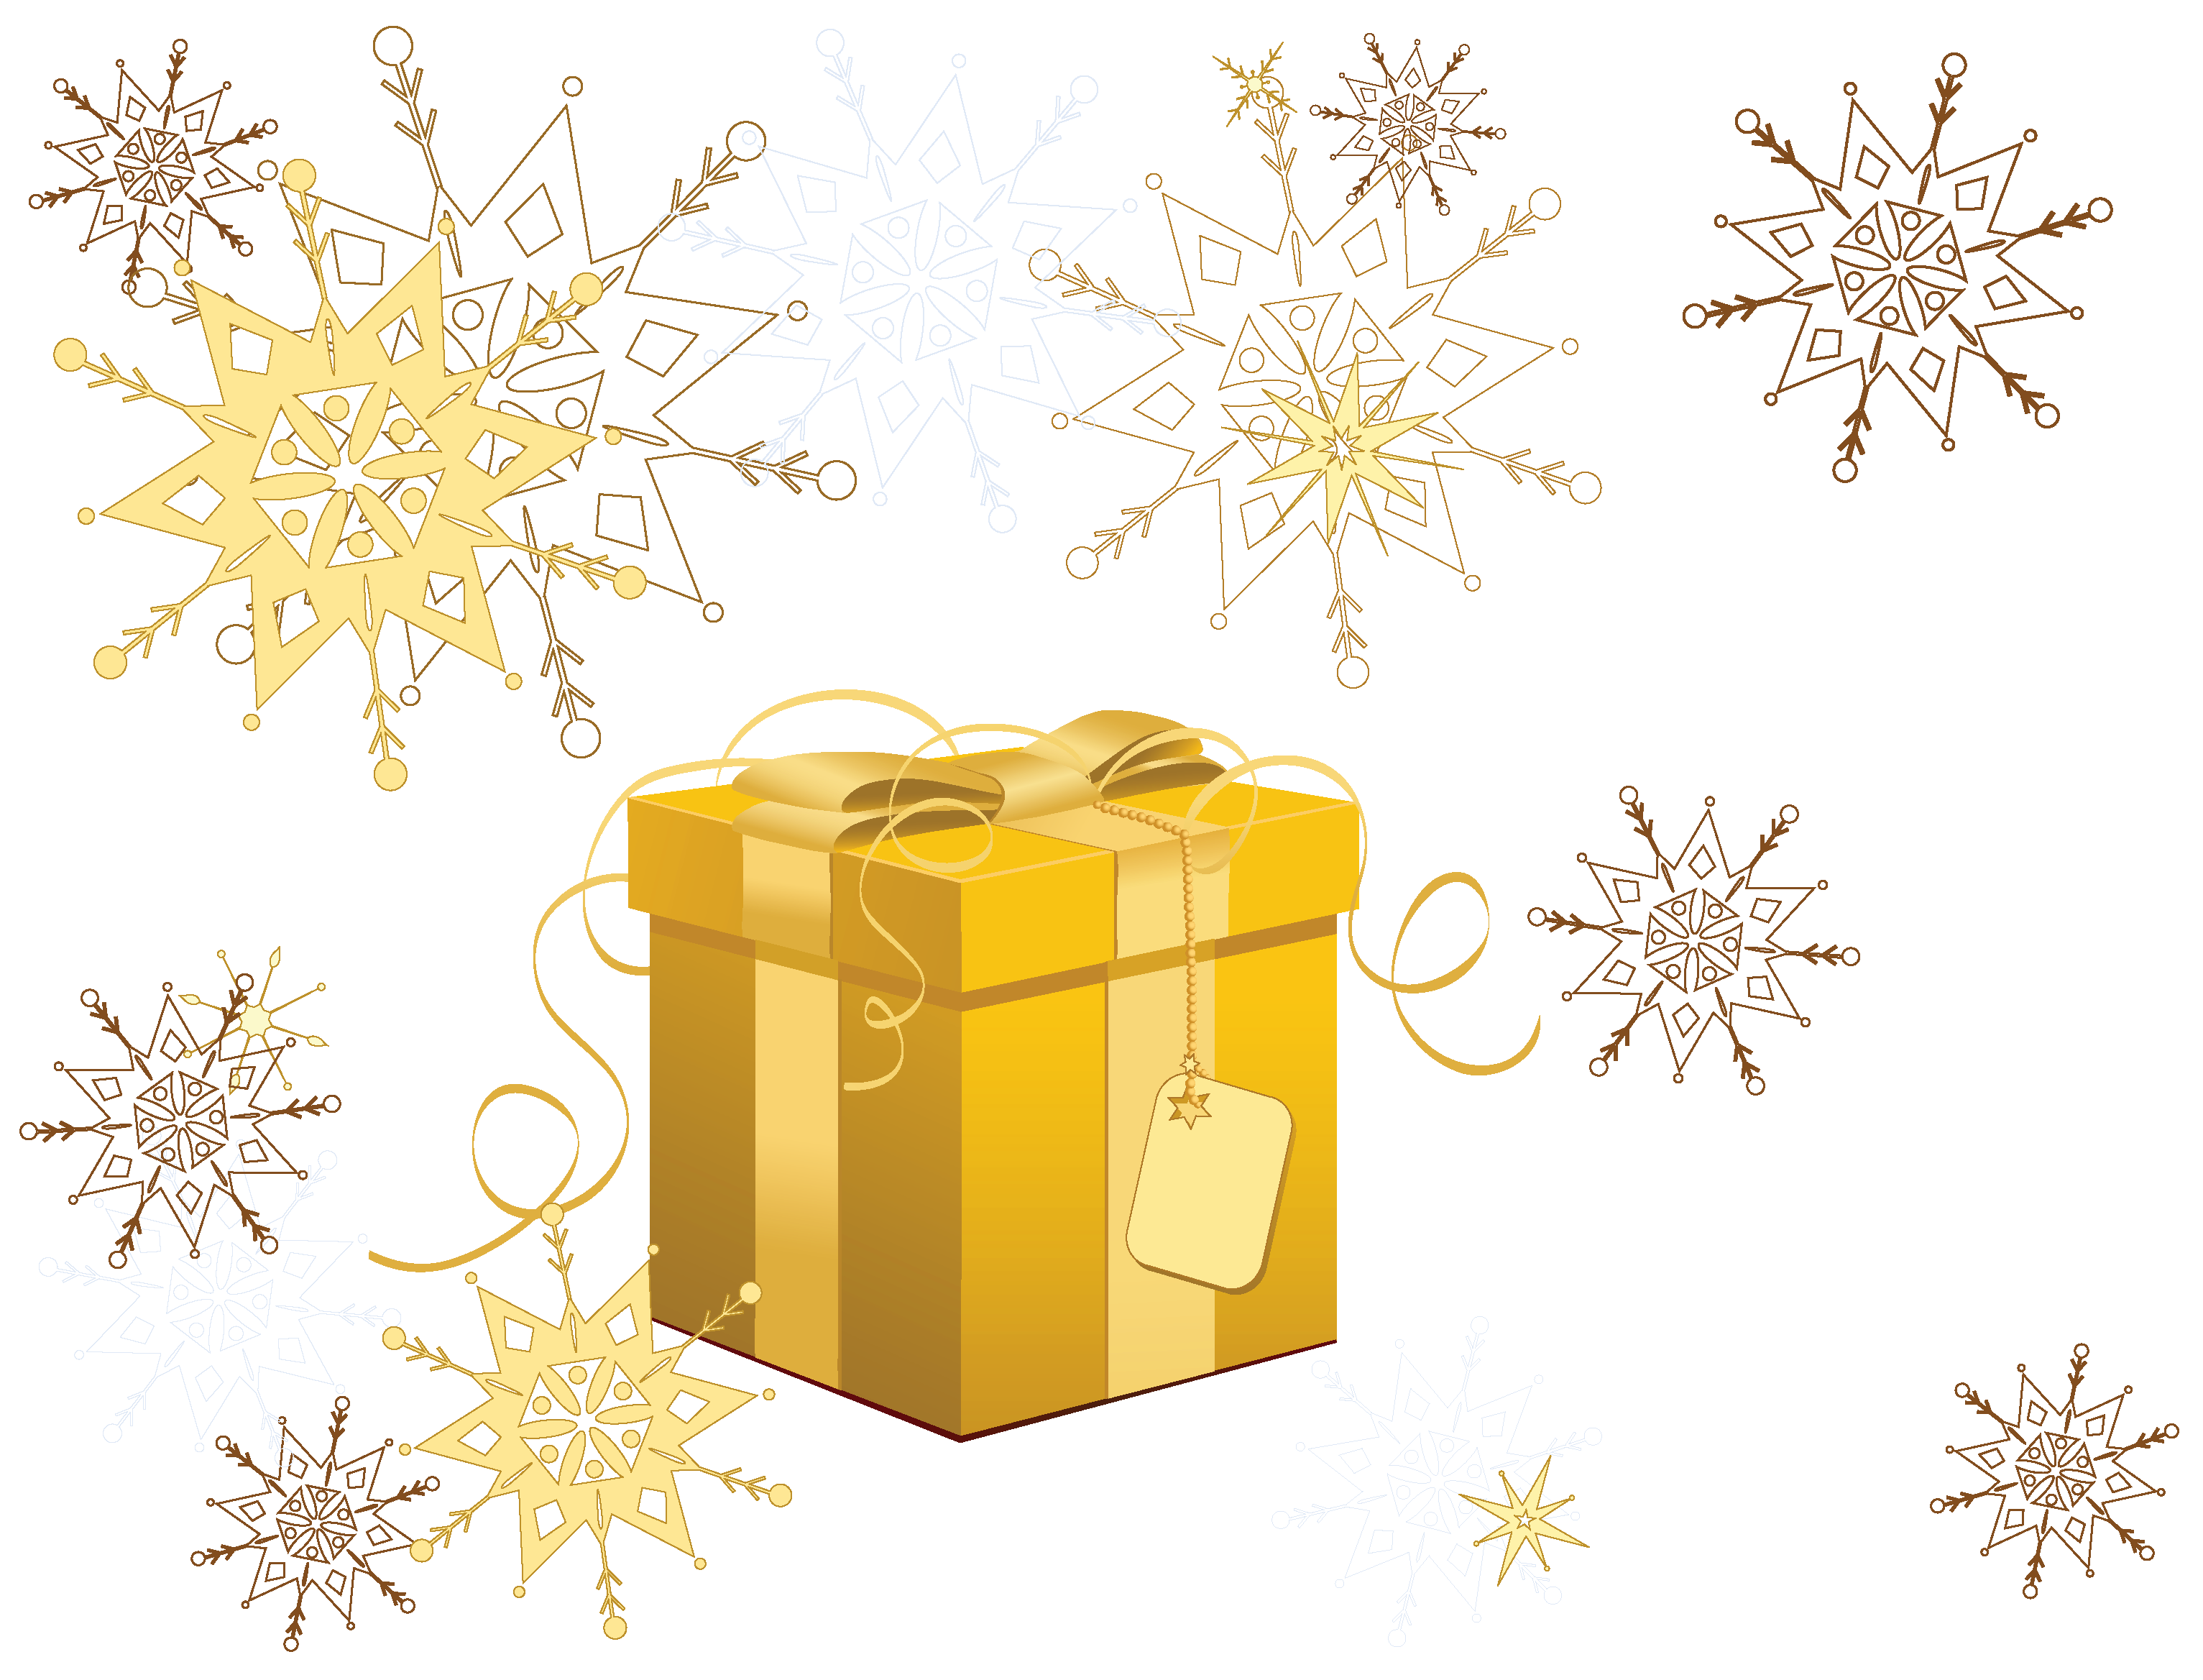 Gold snowflake clipart images banner freeuse download Transparent Yellow Christmas Gift with Snowflakes Clipart | Gallery ... banner freeuse download